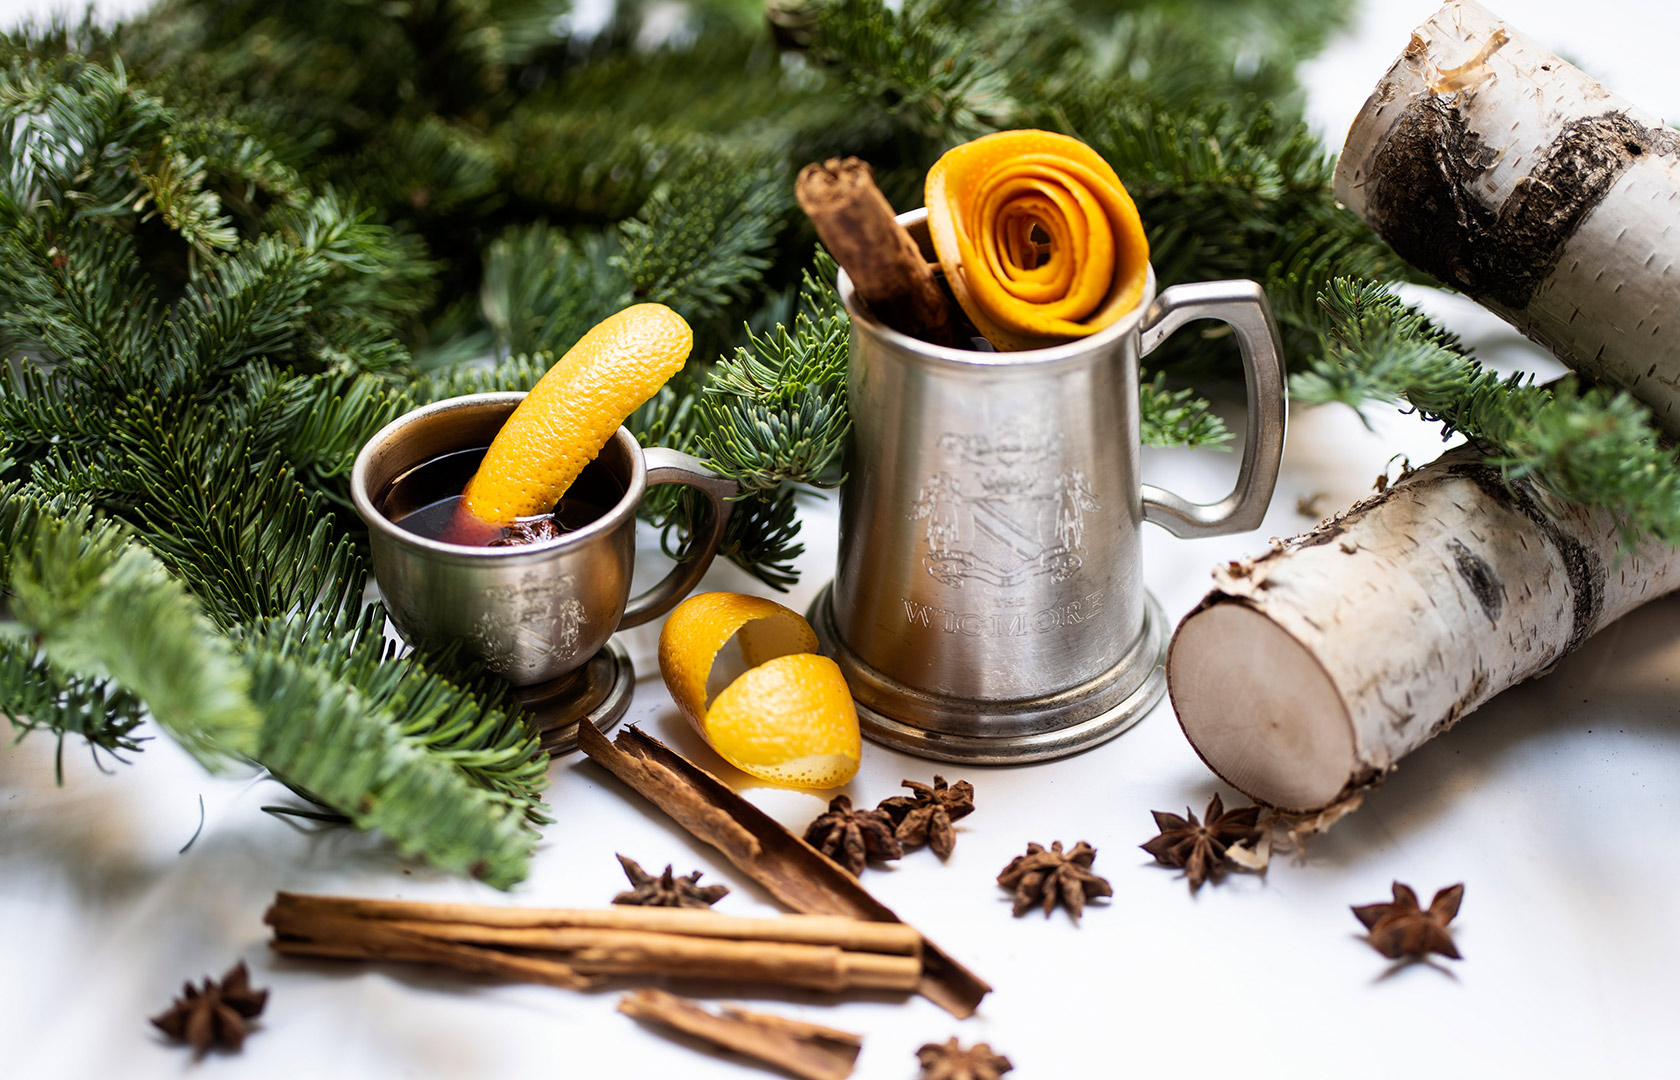 wigmore-festive-season-mulled-wine